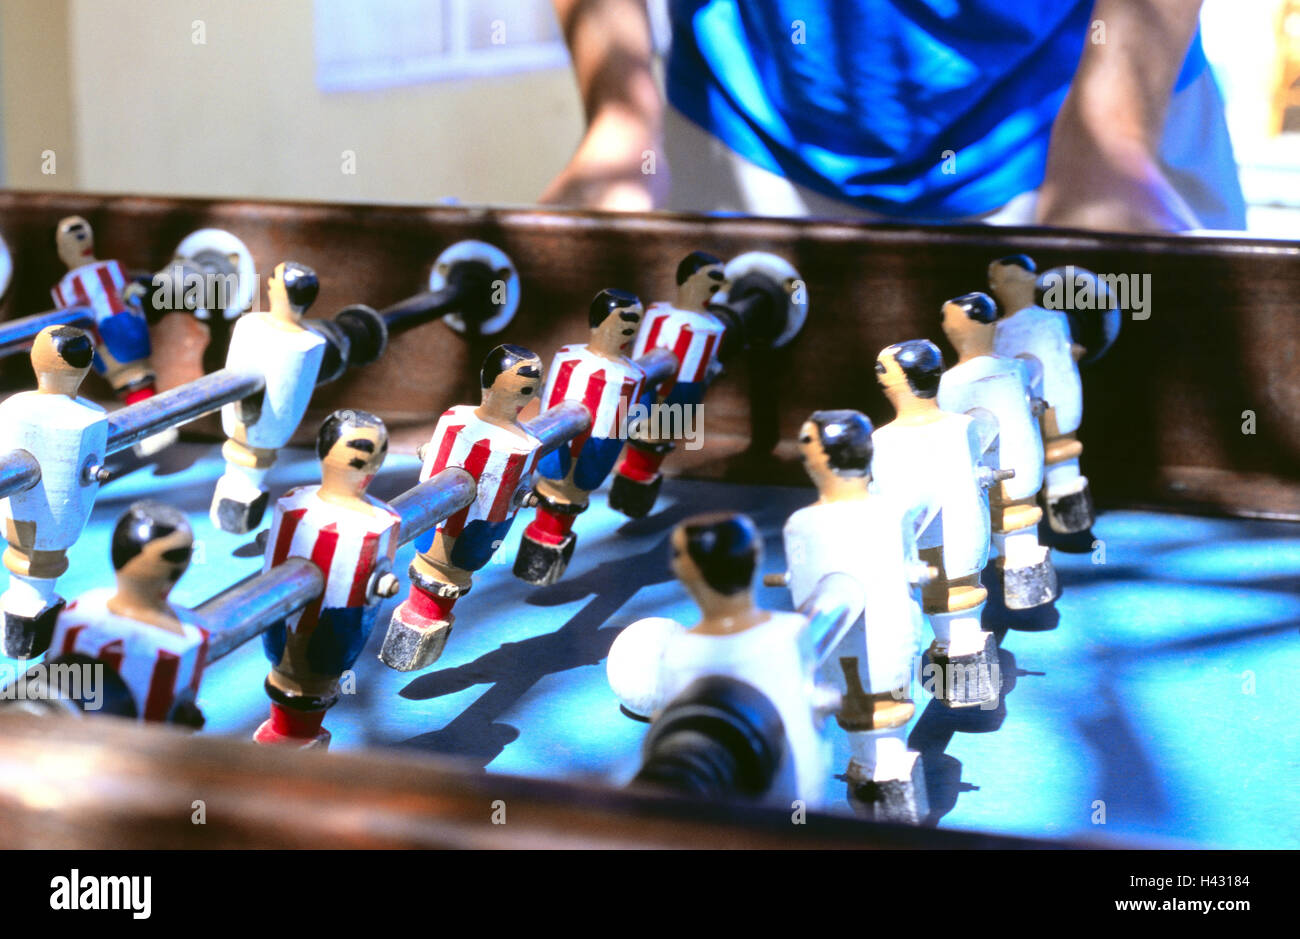 Person, table football, detail, table football match, football player, leisure time, entertainment, game, sticks, - Stock Image